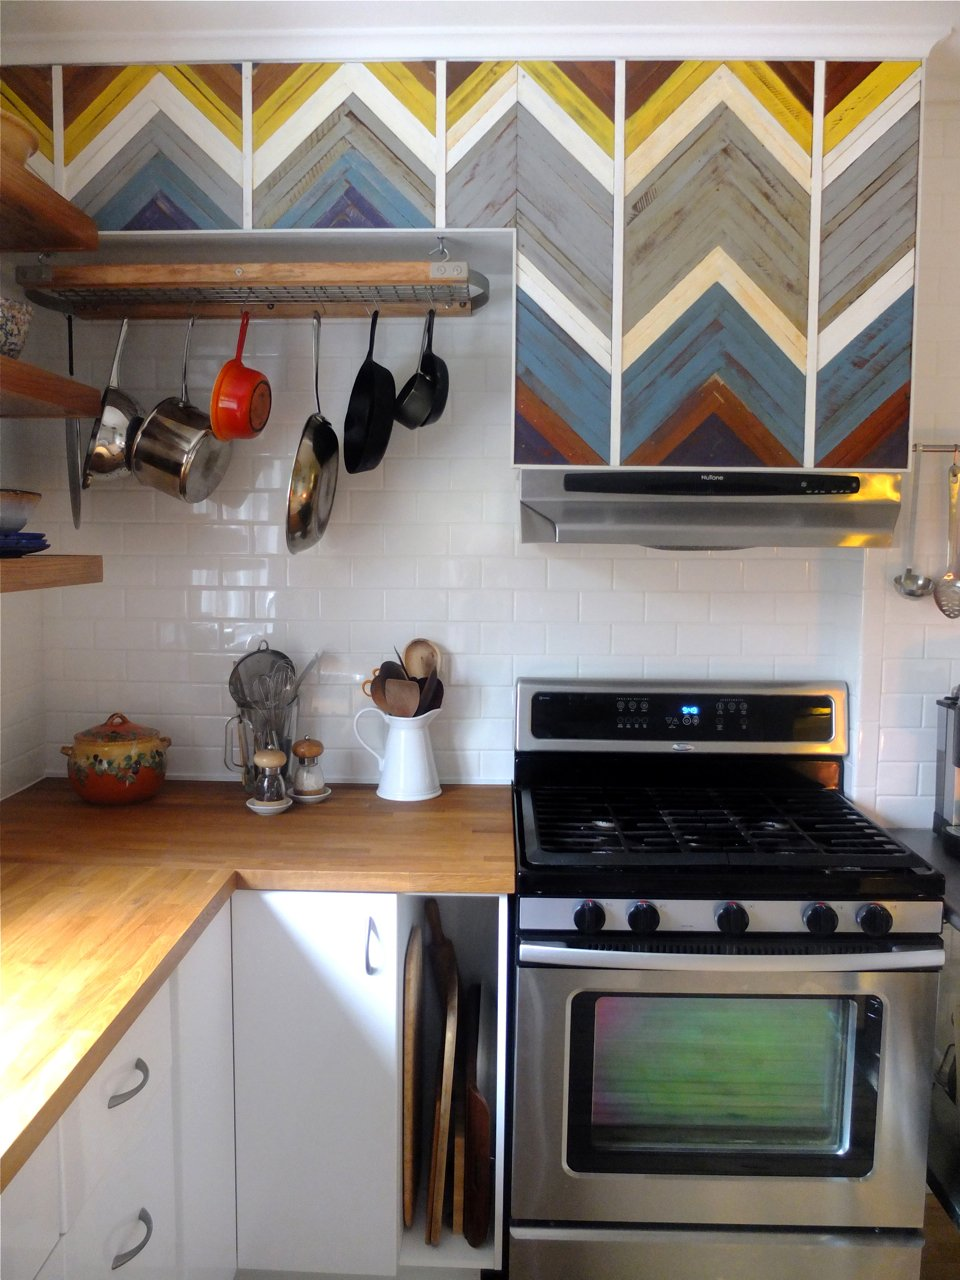 61 Add Pops of Color to The Kitchen Simphome